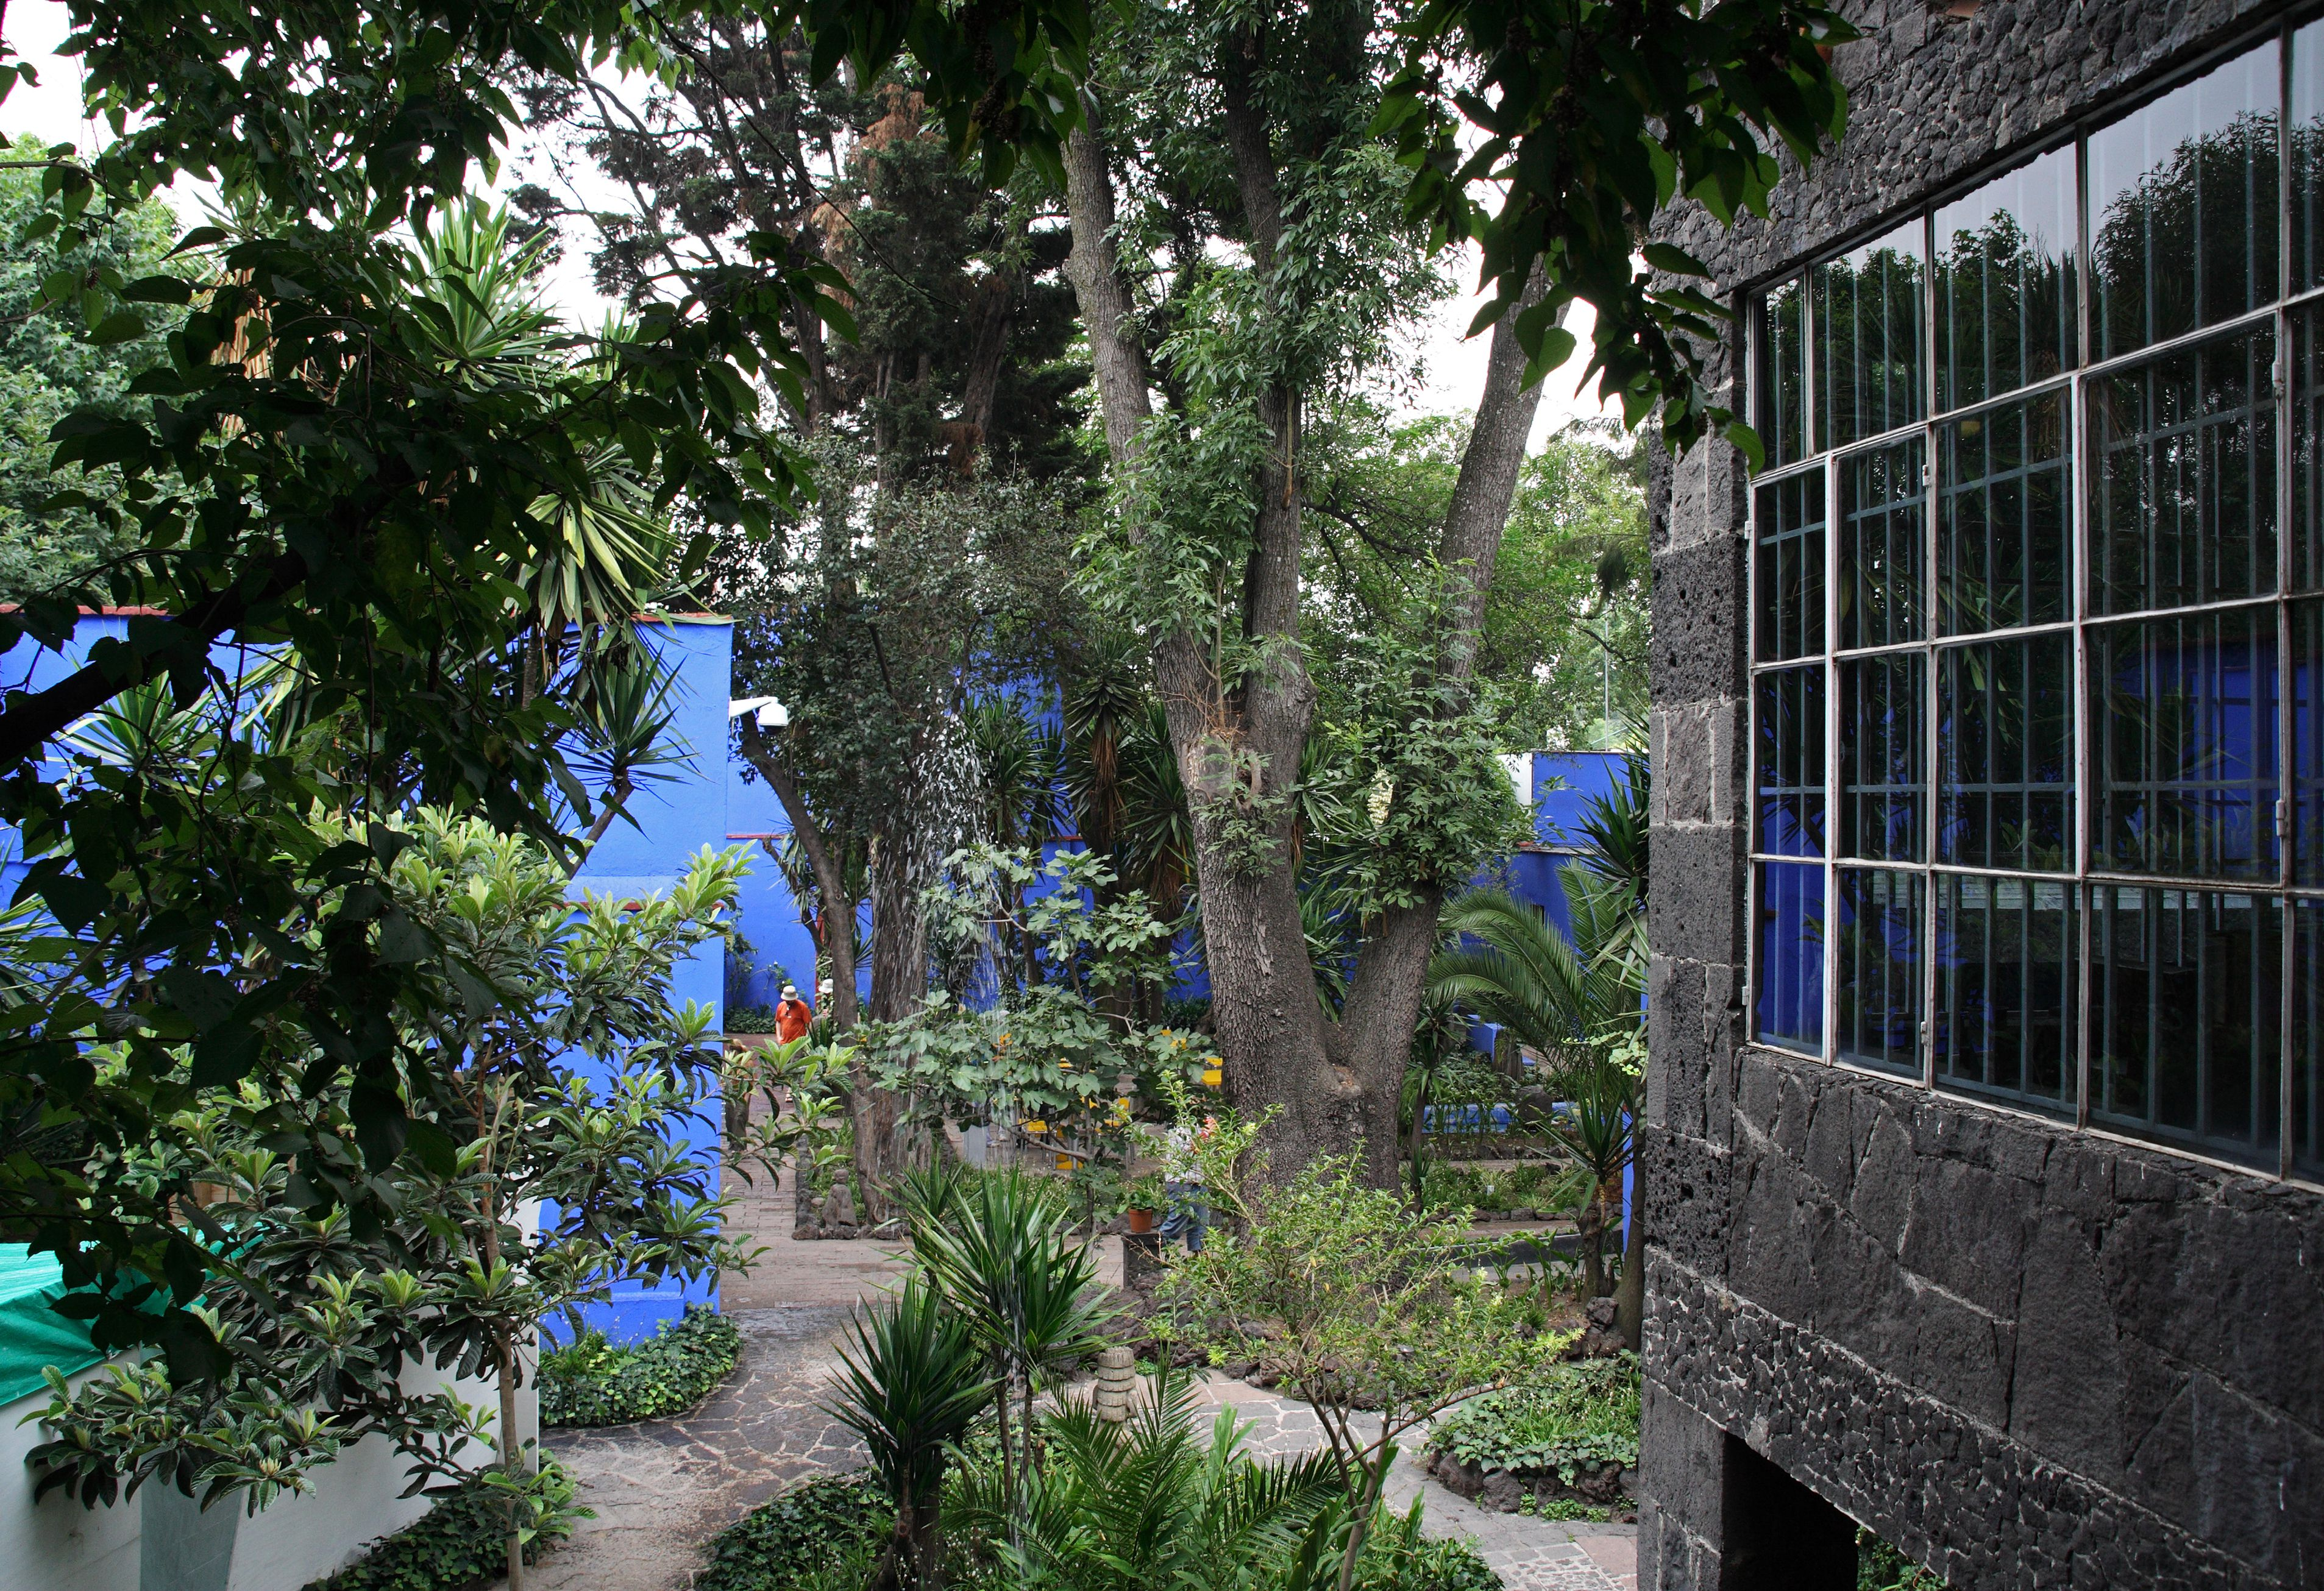 Mexico, Mexico City, Coyoacán. The Museo Frida Kahlo, a gallery of artwork by the Mexican painter Frida Kahlo in the house where she was born and spent most of her life.